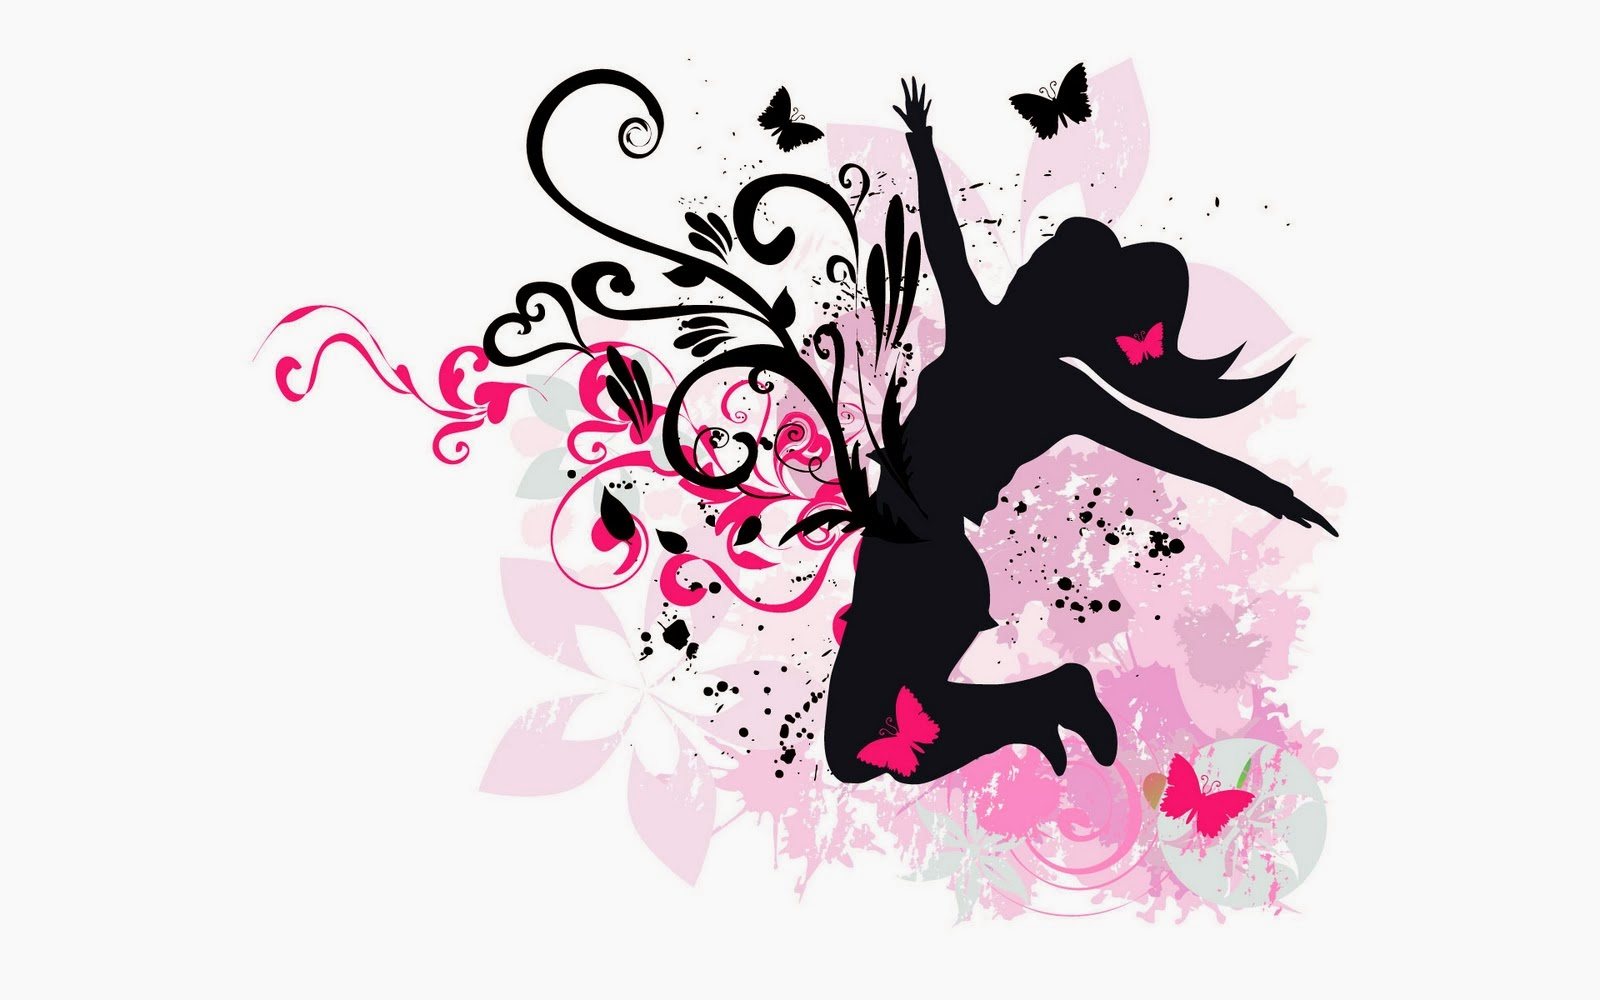 Free Download White Music Desktop Wallpaper With Black And Pink